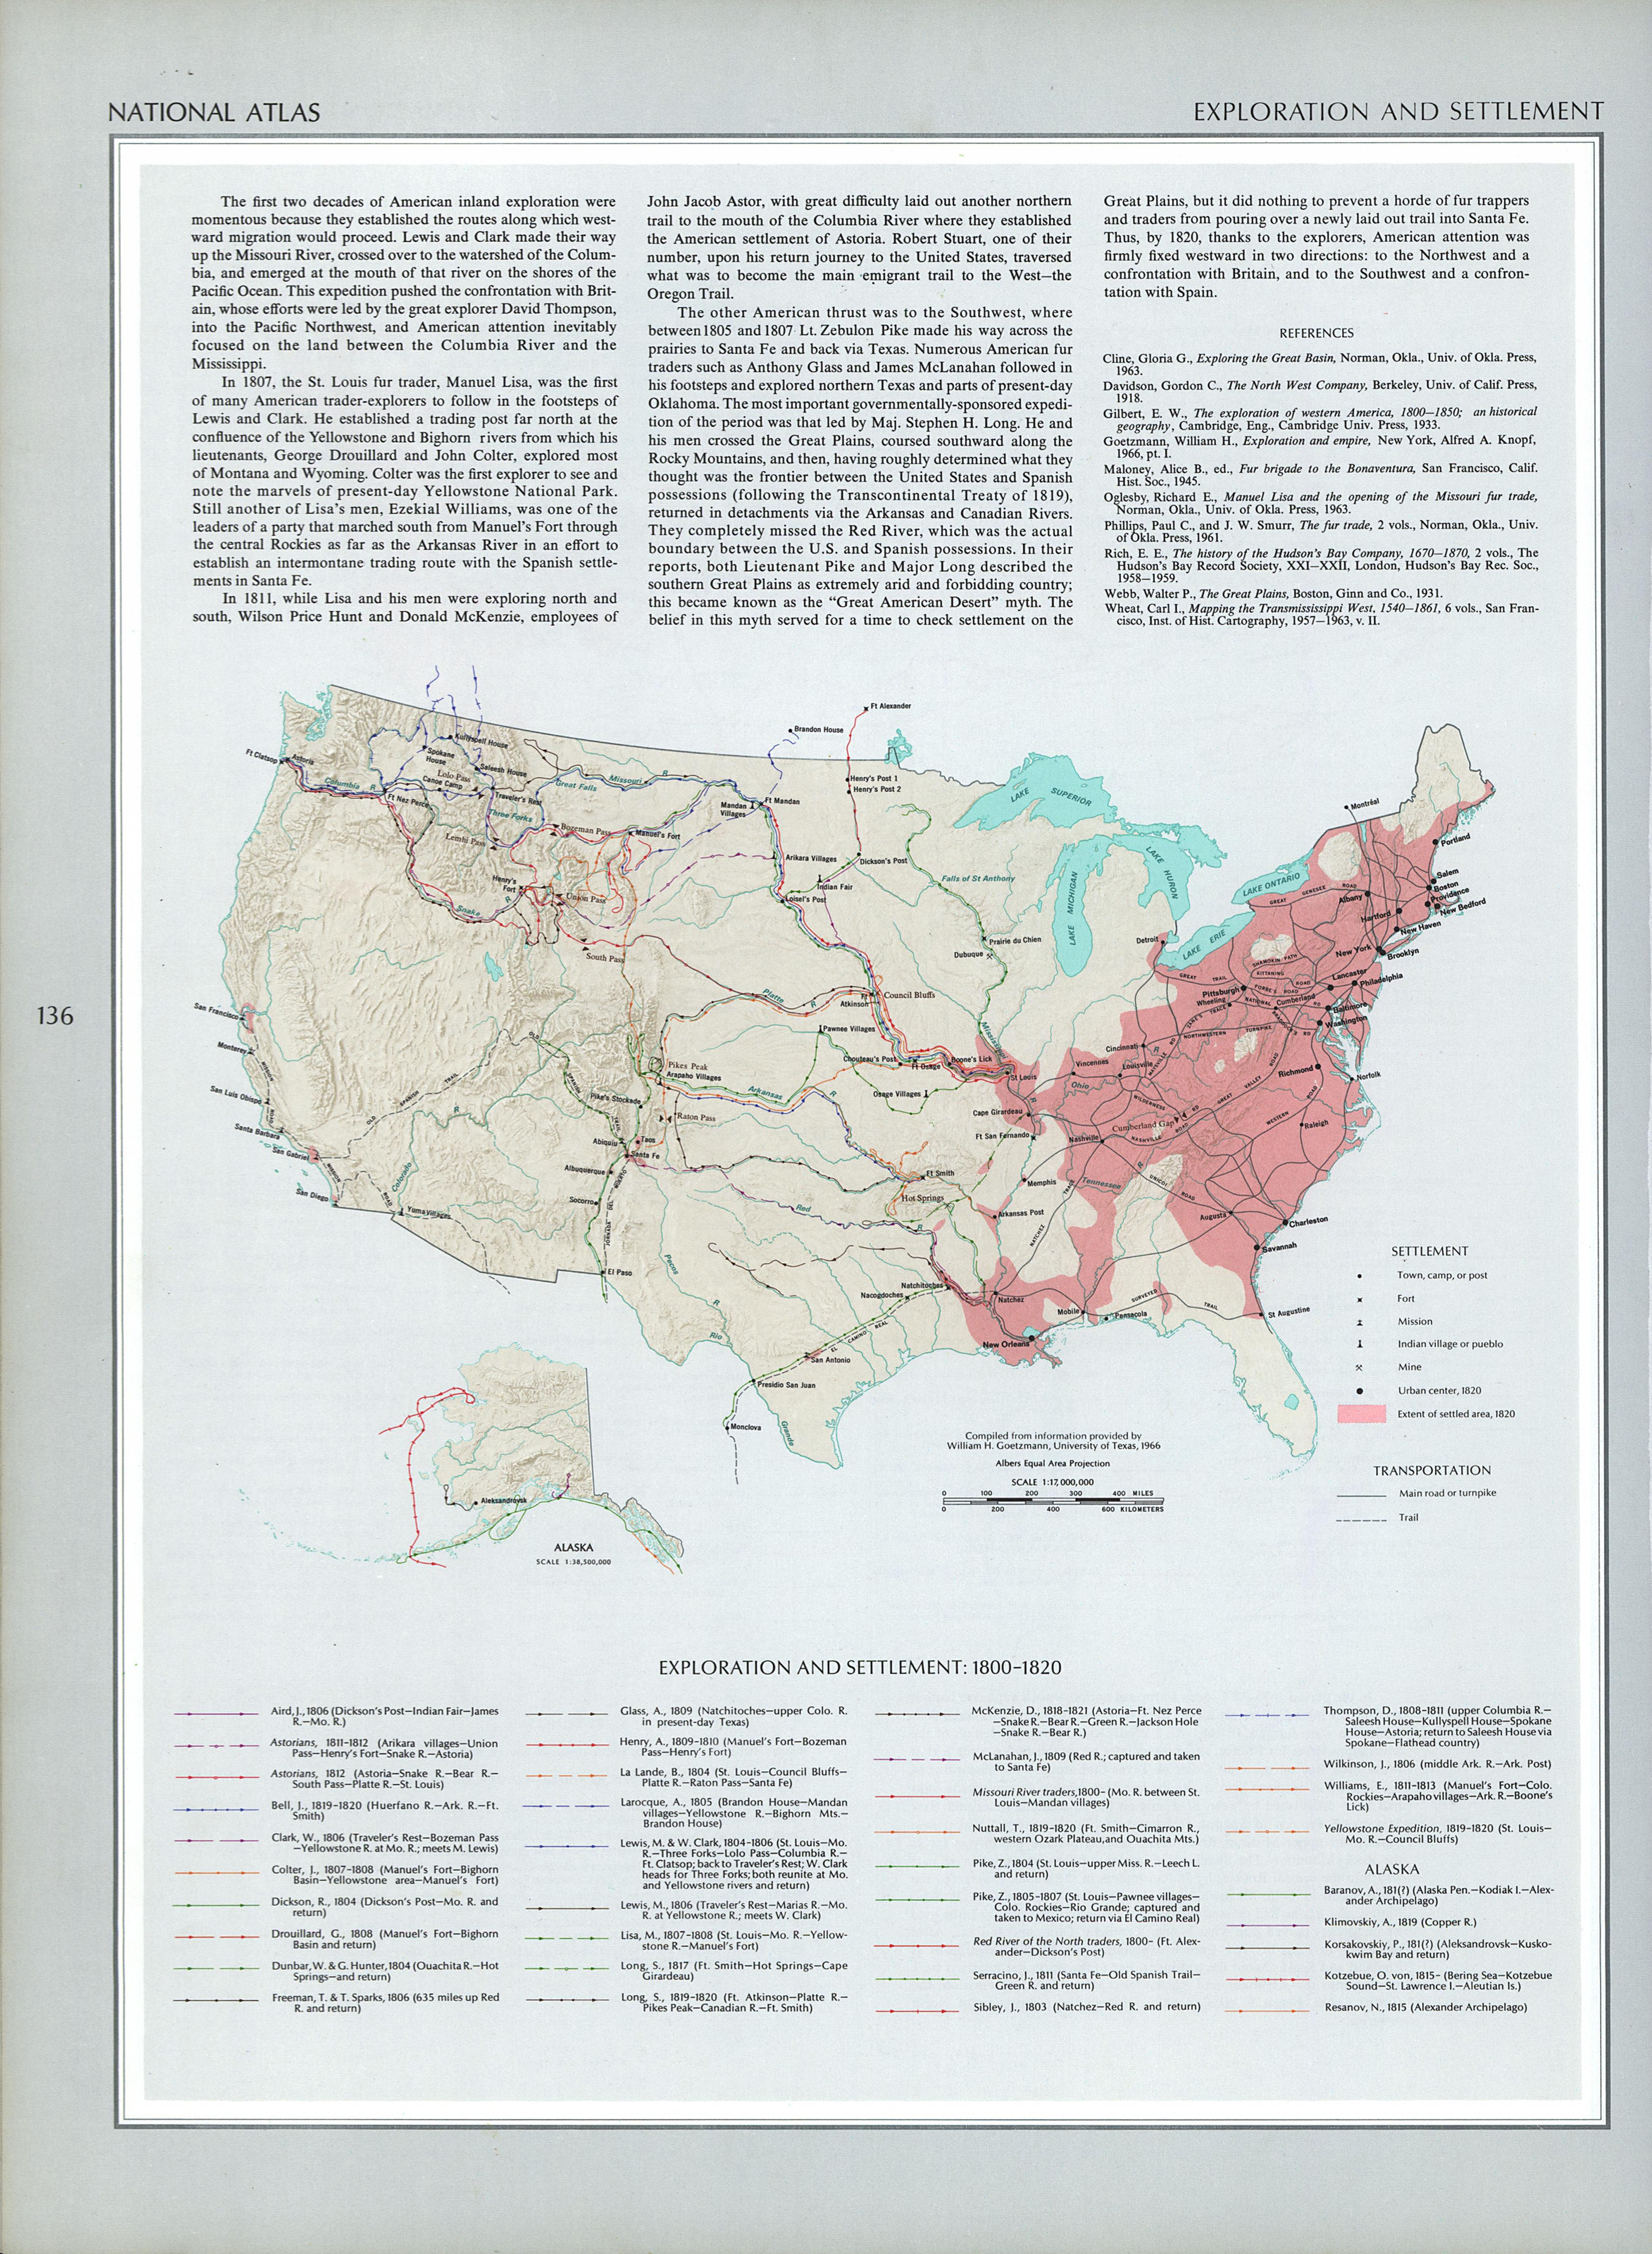 United States Territory Exploration and Settlement Map 1800 - 1820